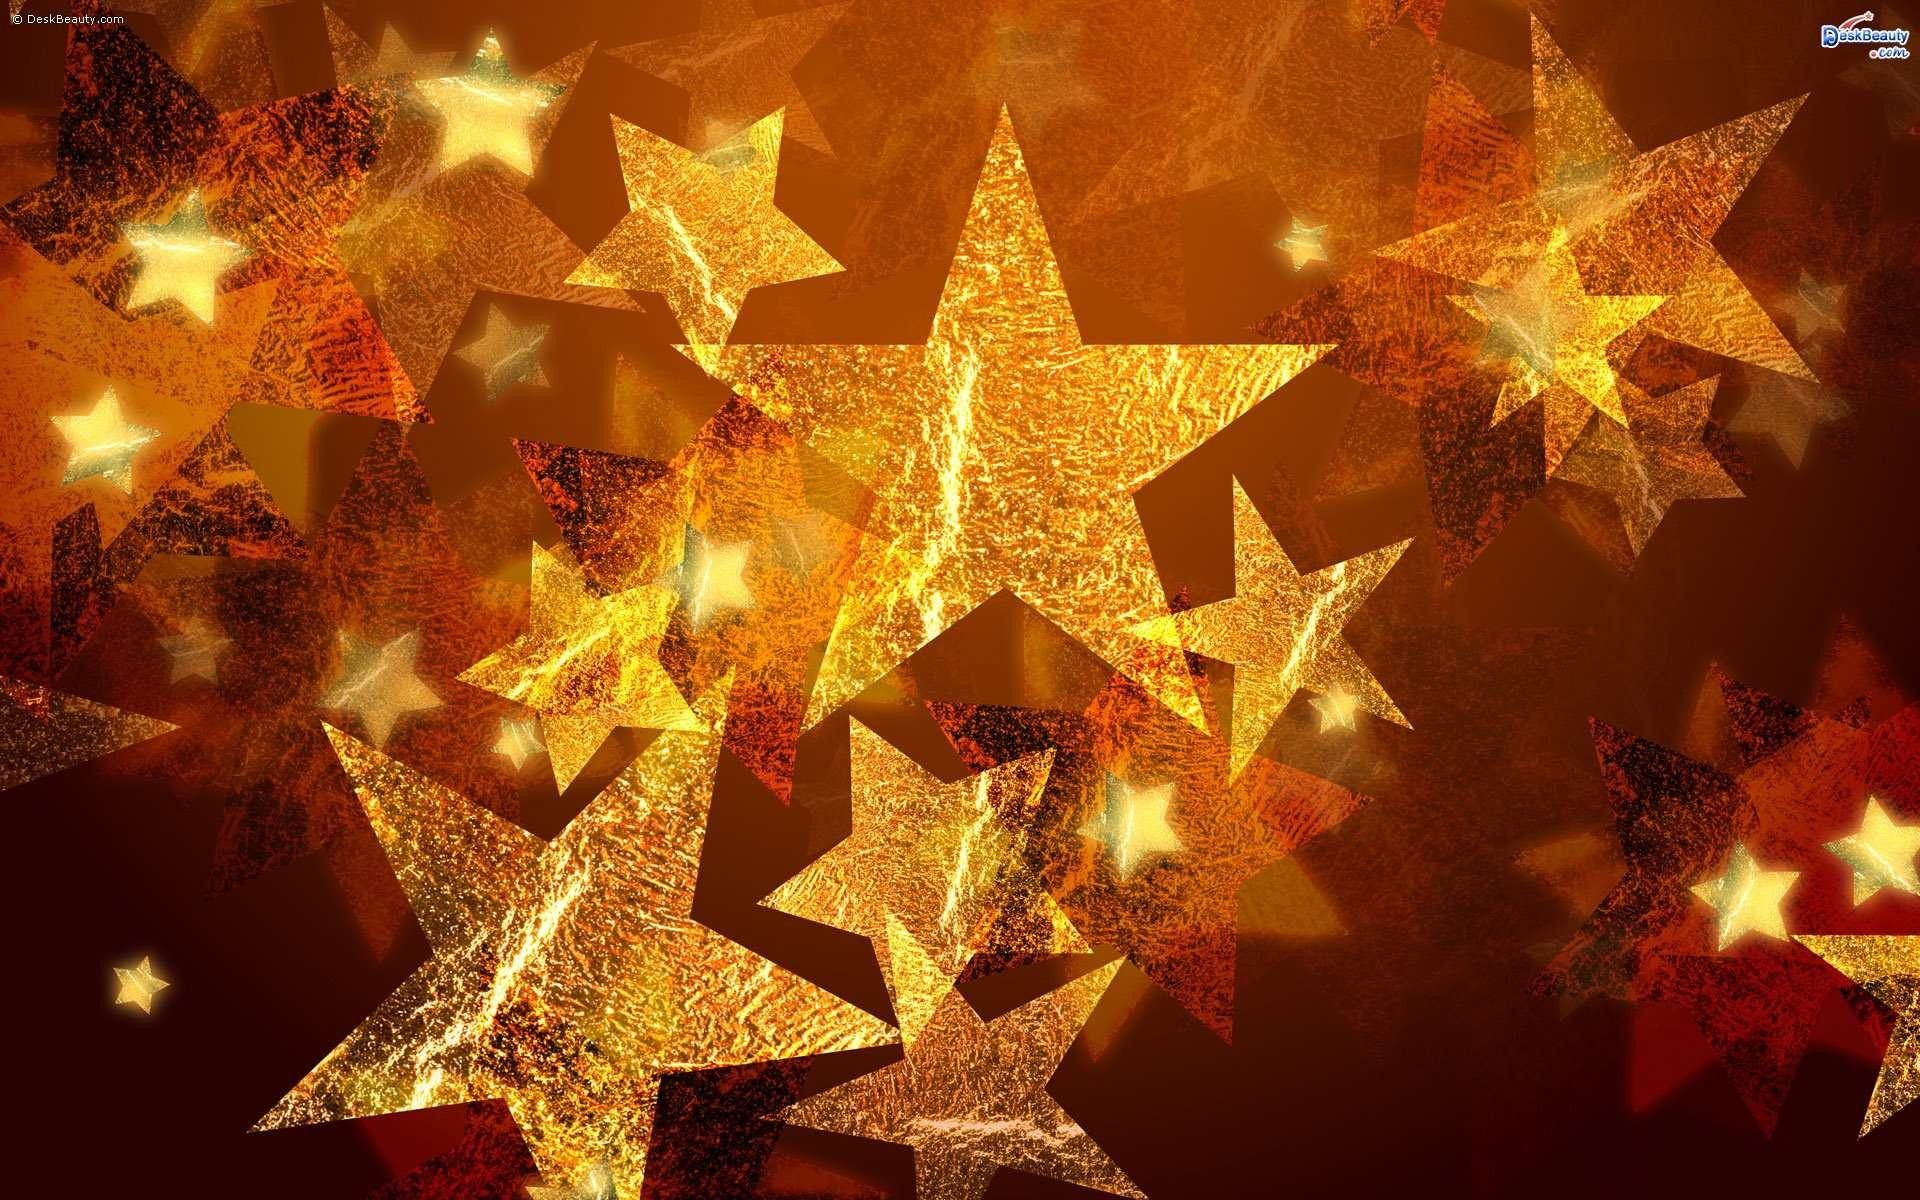 Free Wallpapers Backgrounds – wallpapers christmas religious media .